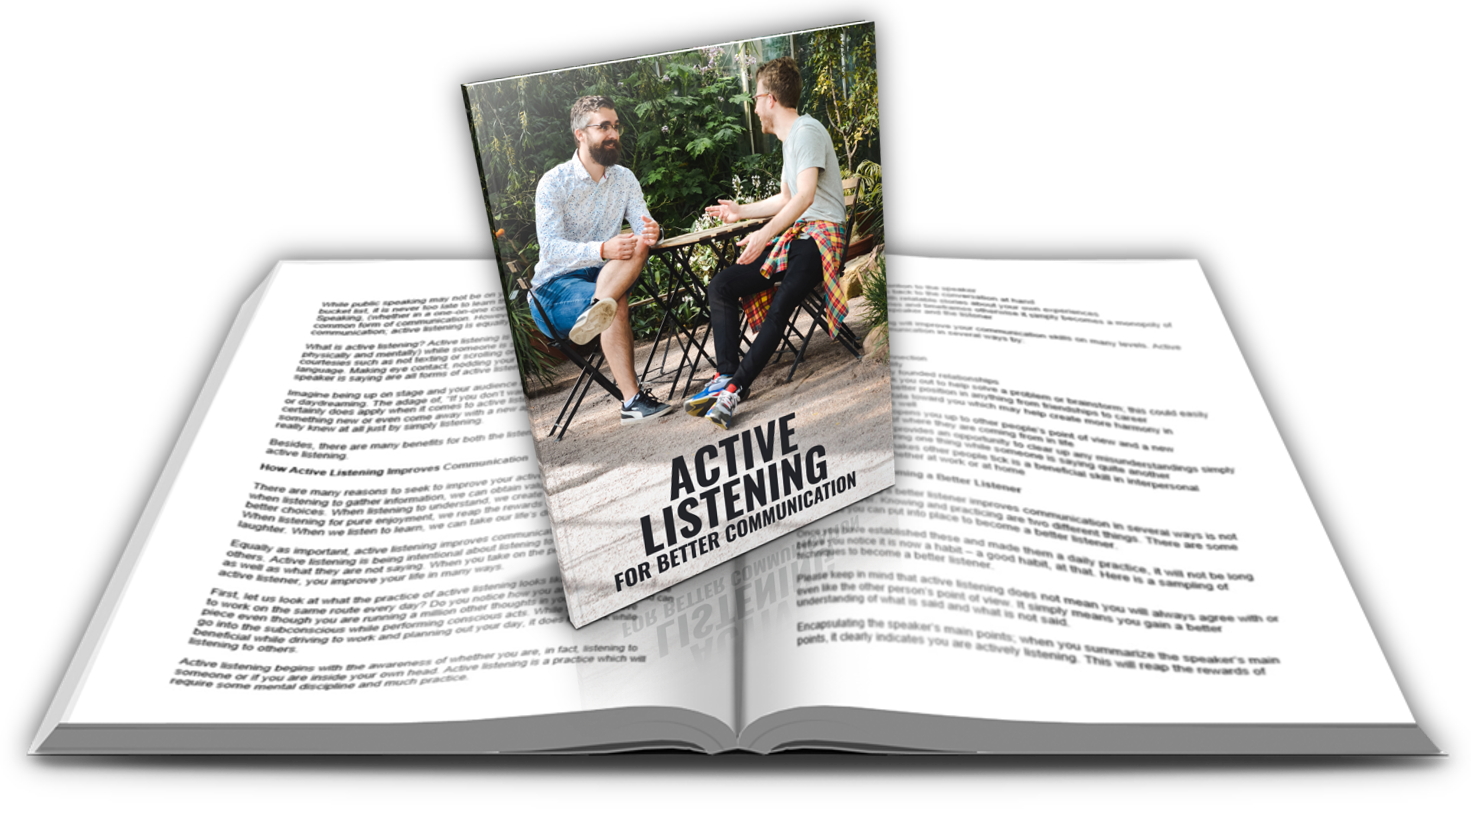 1 Active Listening report Image